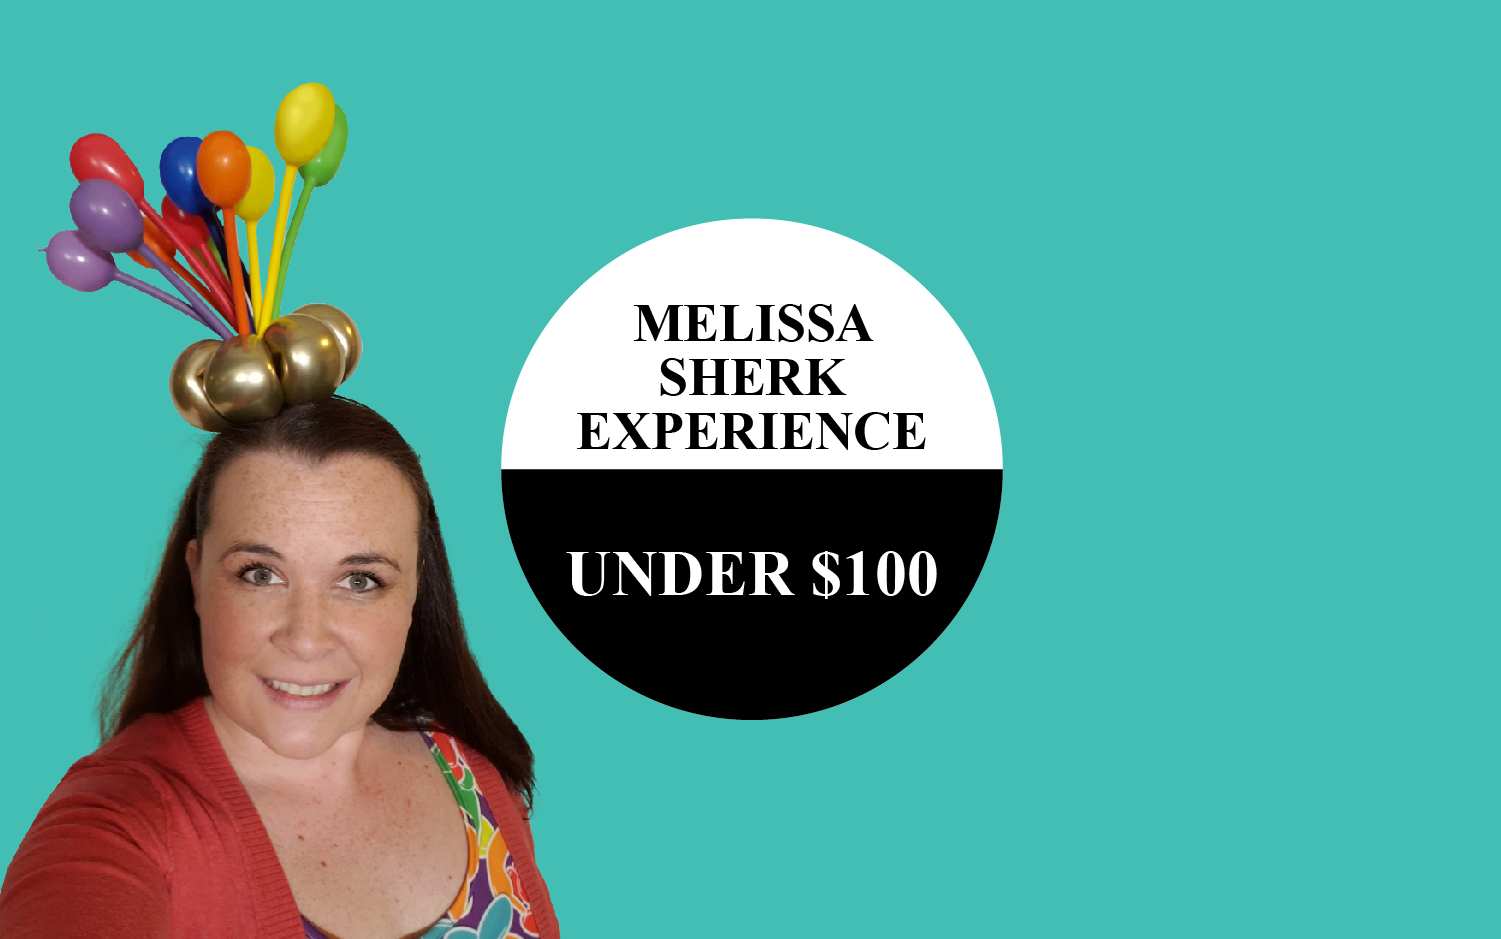 The Melissa Sherk Experience including Organic Balloons